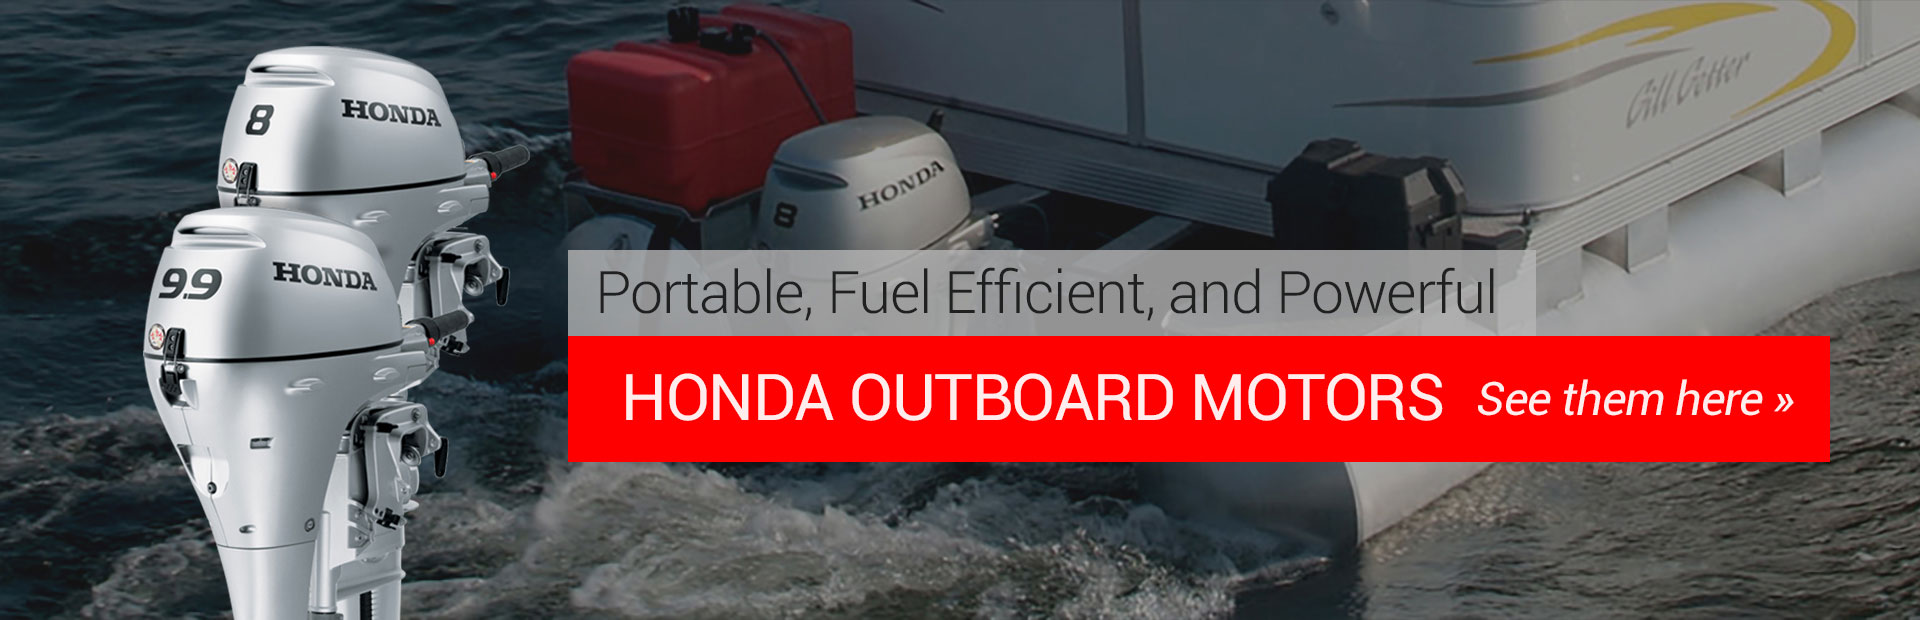 Honda Outboard Motors: Click here to view the models.